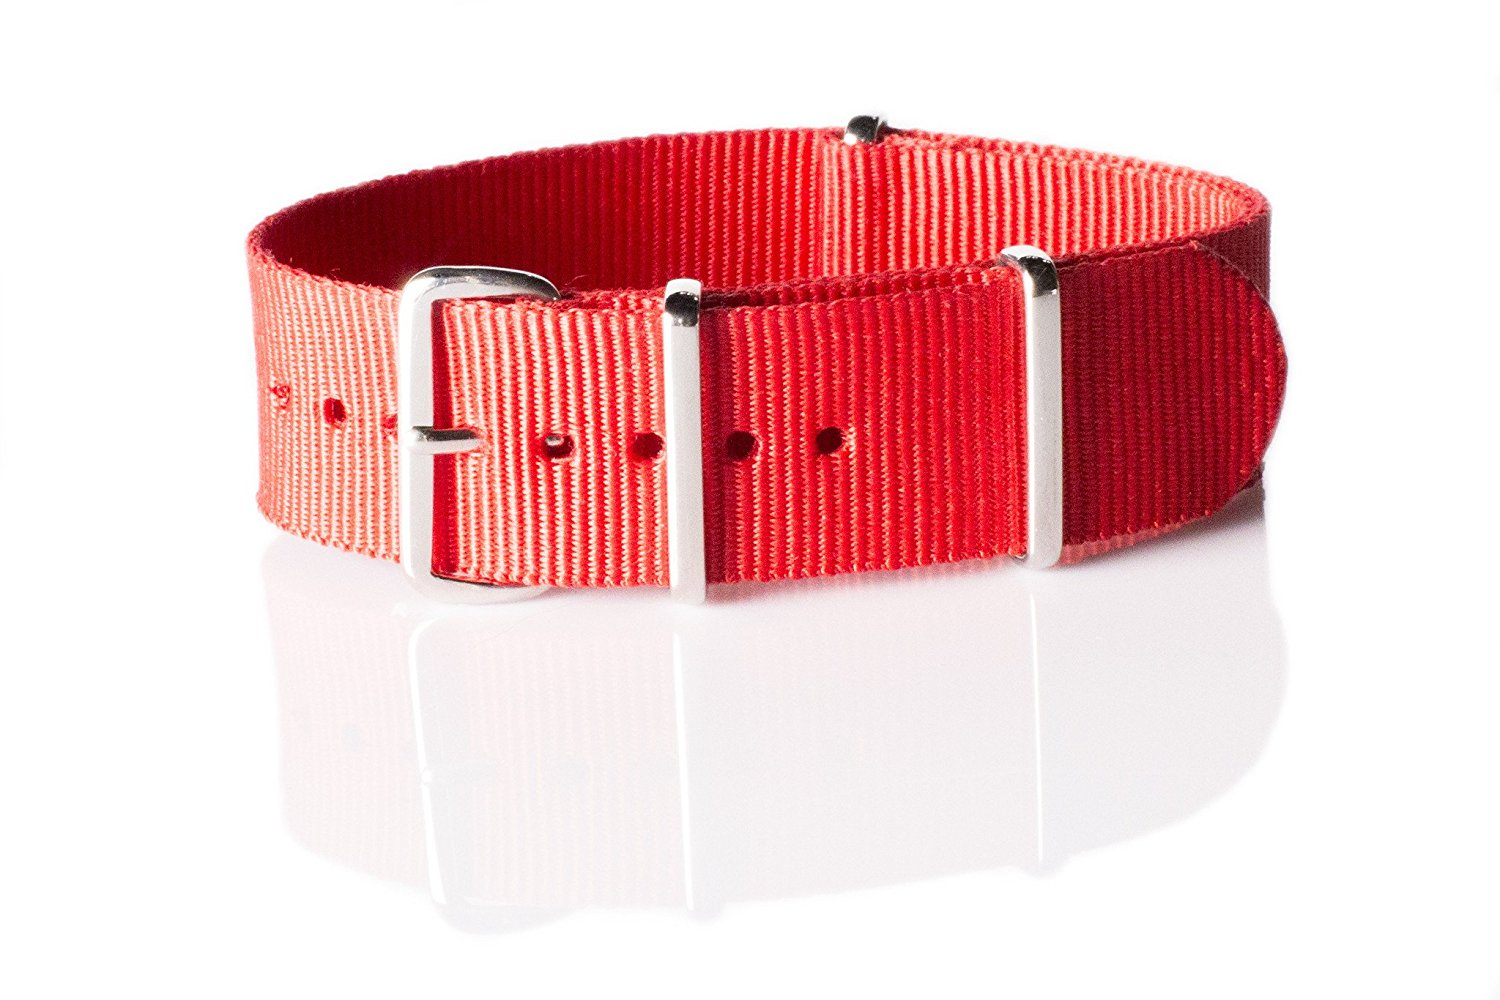 NATO G10 Nylon Premium Quality Replacement Watch Band Strap - 20mm / Red - FITS ALL WATCHES - (Military Army, J. Crew, Timex Weekender, Daniel Wellington, Urban Outfitters, Luminox, Seiko, Citizen, Blackout Watches, Victorinox Swiss Army, Rolex and more‎)